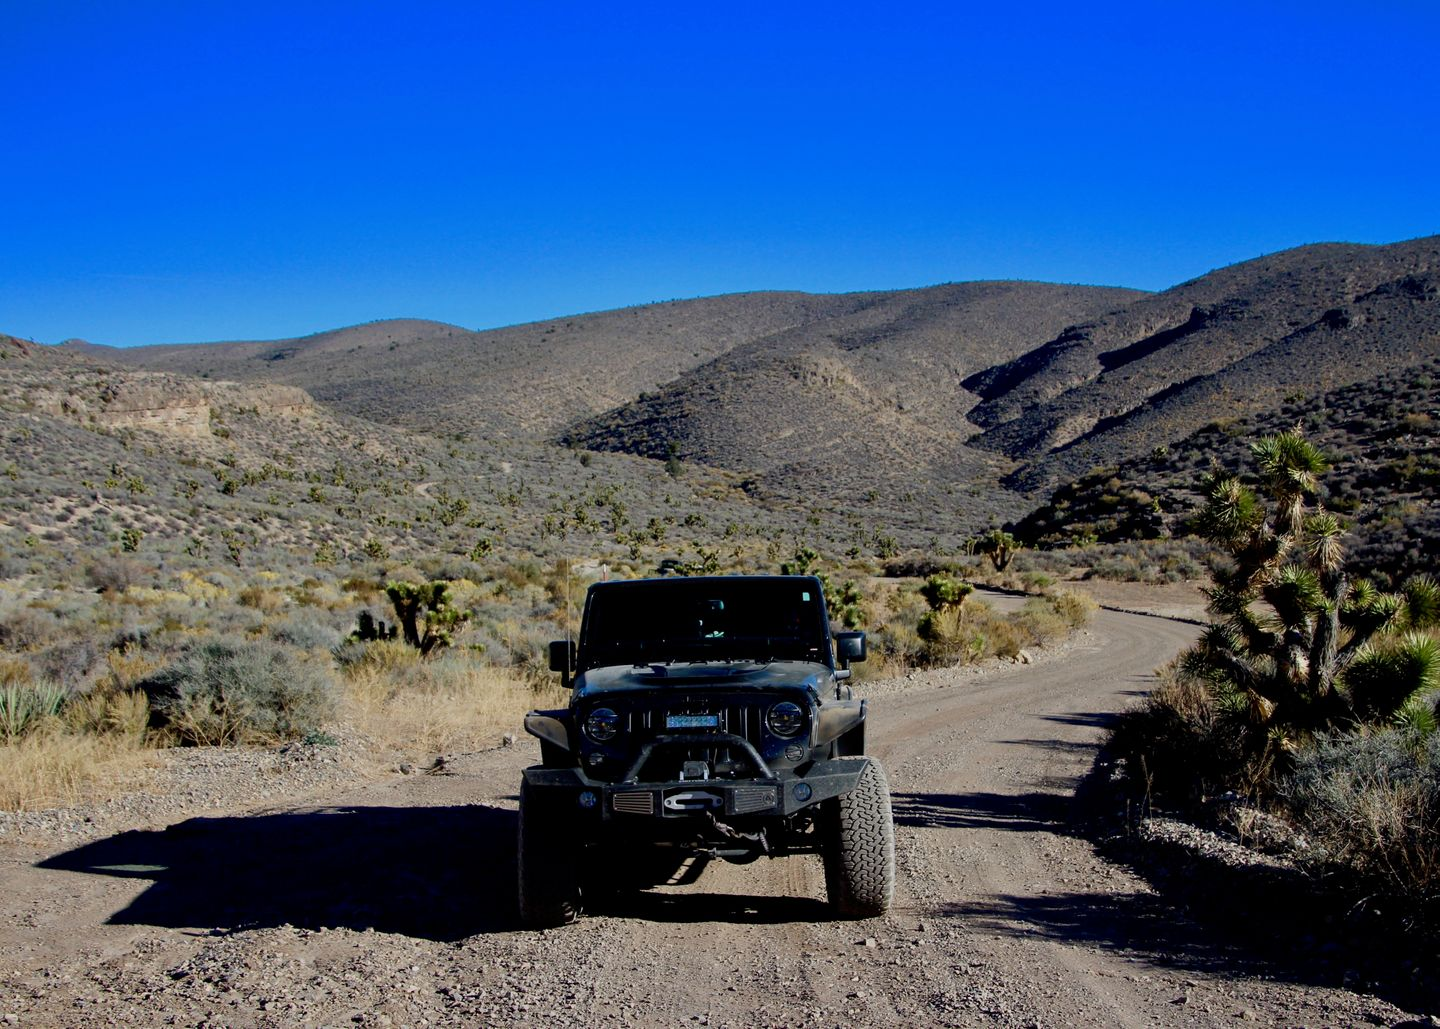 Badger Valley Loop Nevada - Waypoint 4: Take Road to the East